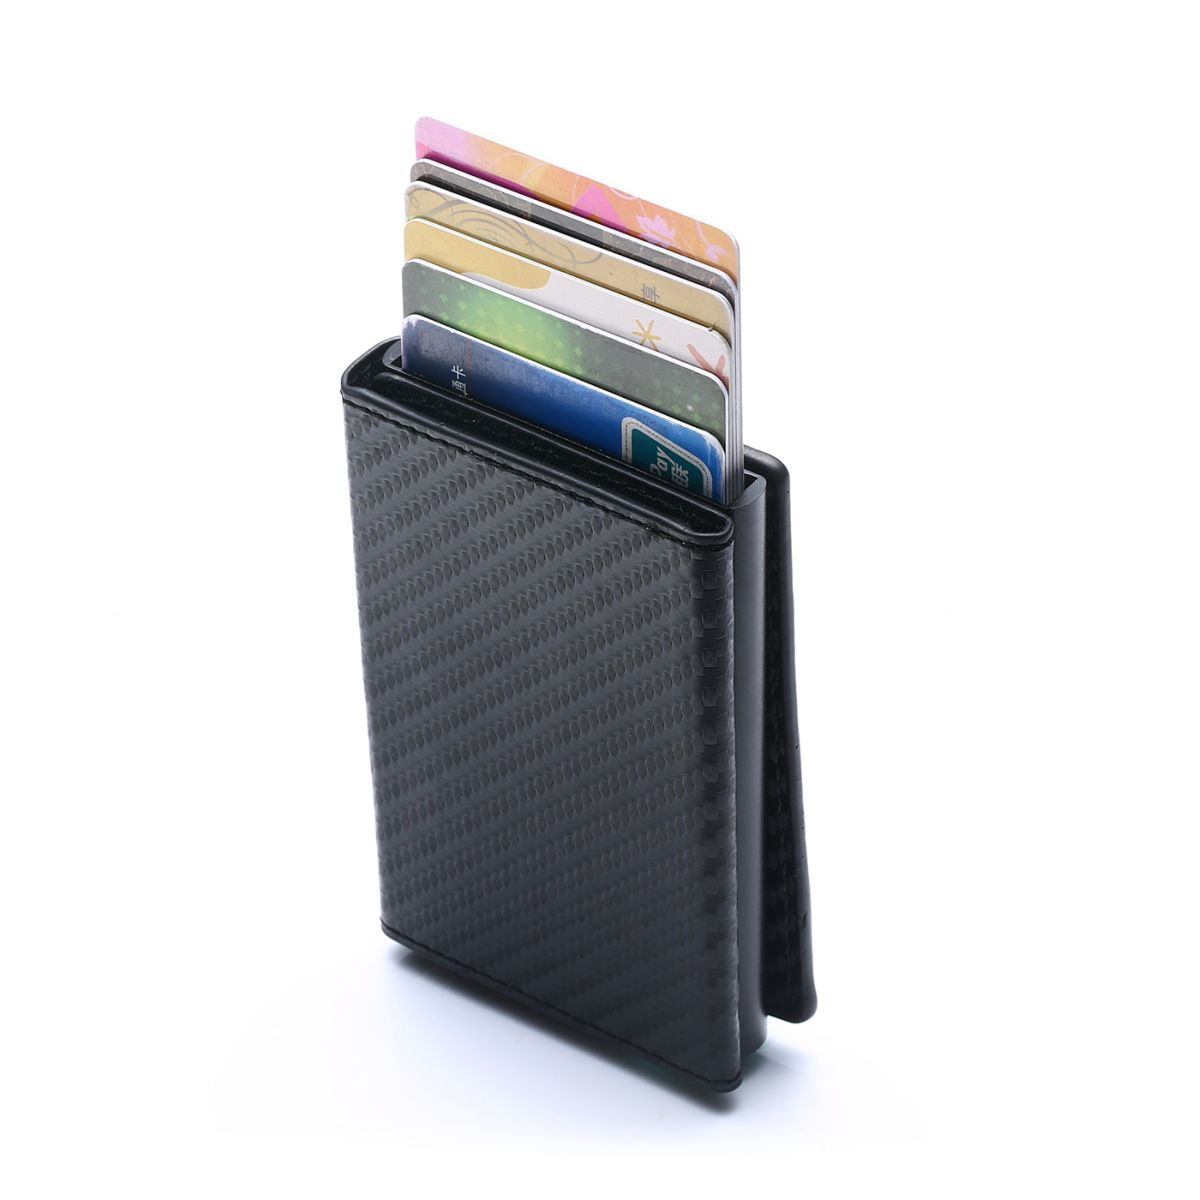 WALLET Aluminum Wallet With PU Leather And Zipper - Carbon